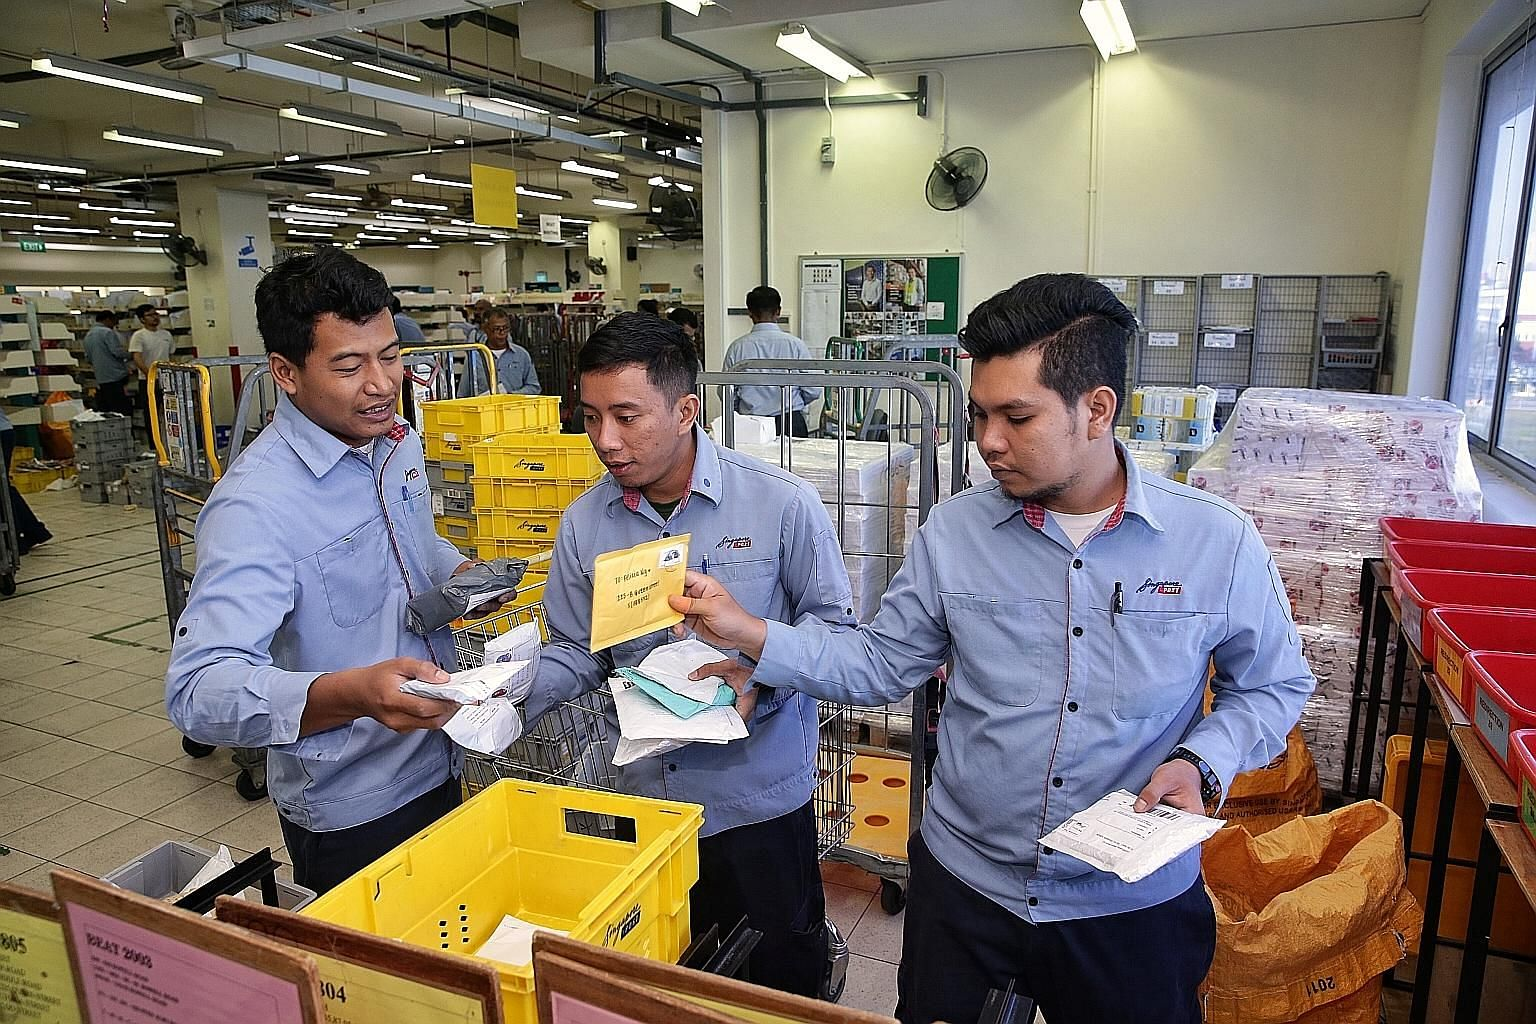 SingPost employees (from left) Hairul Azhar Ismail, 29, Mohammad Hussin Supardi, 30, and Mohd Syafiq Mohd Yusoff, 24, sorting mail for delivery at the Kallang Delivery Base yesterday. They are among about 400 Malaysian SingPost staff who are staying